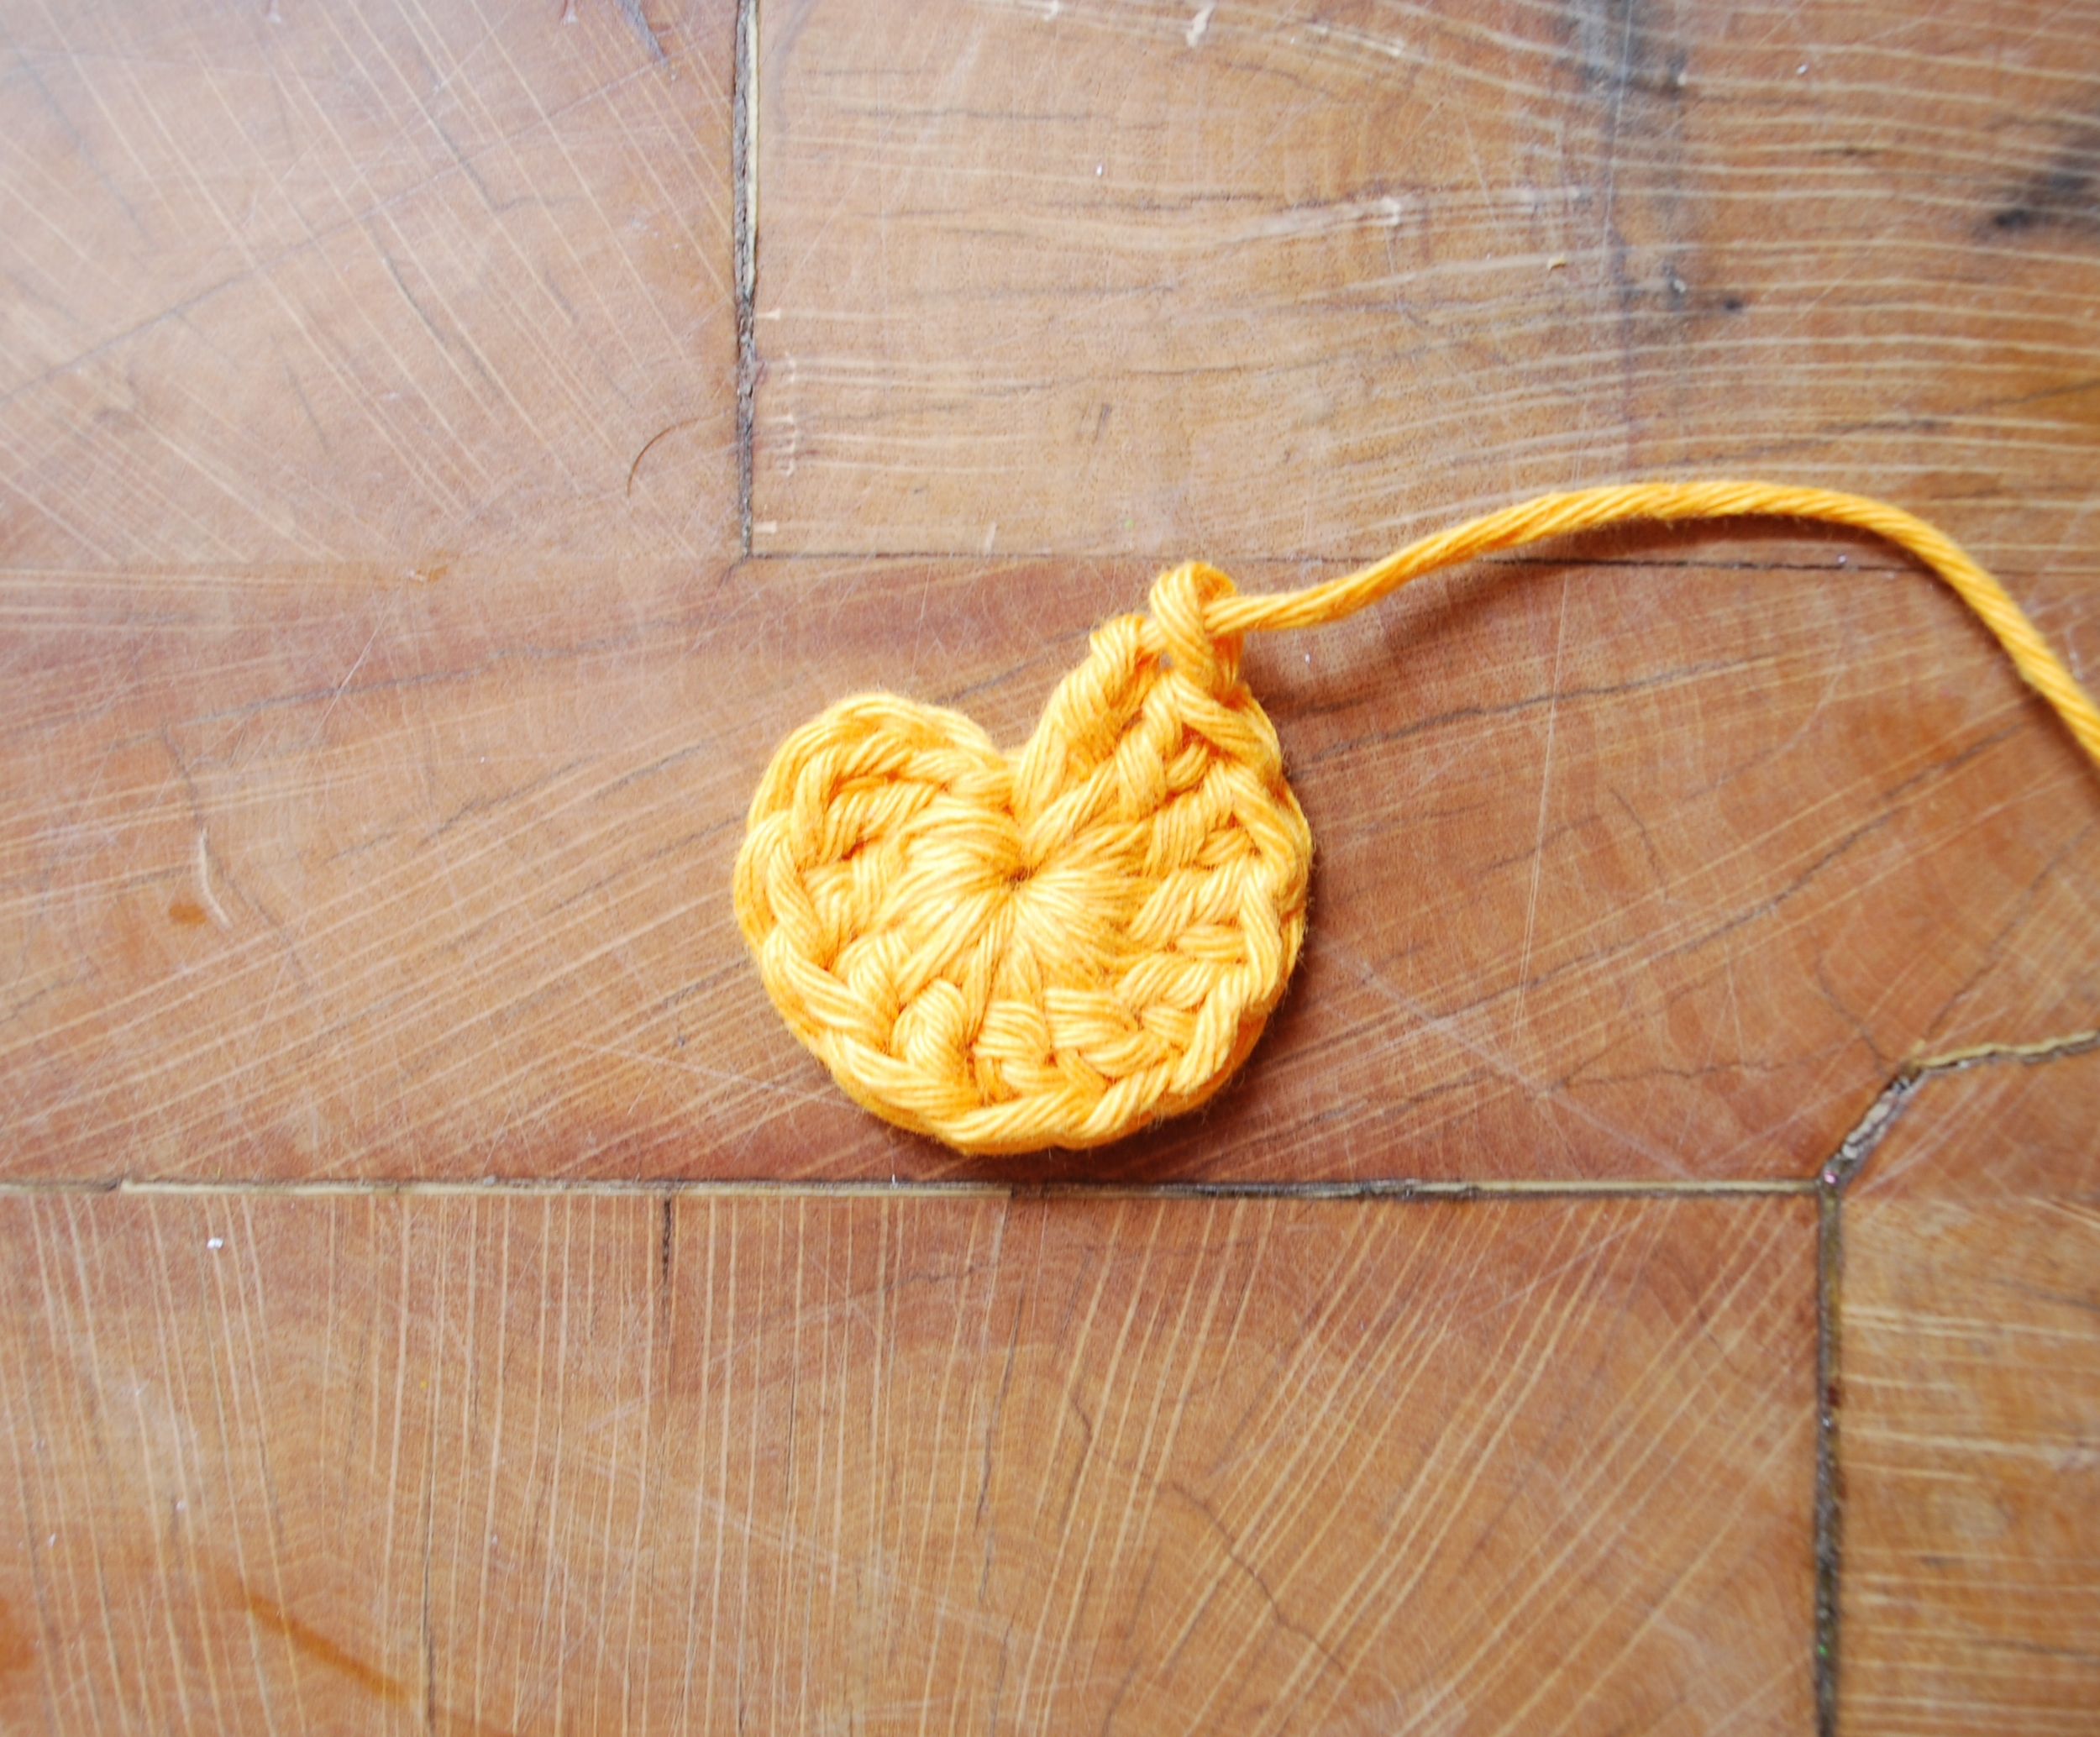 Cut your yarn and pull it all the way through.